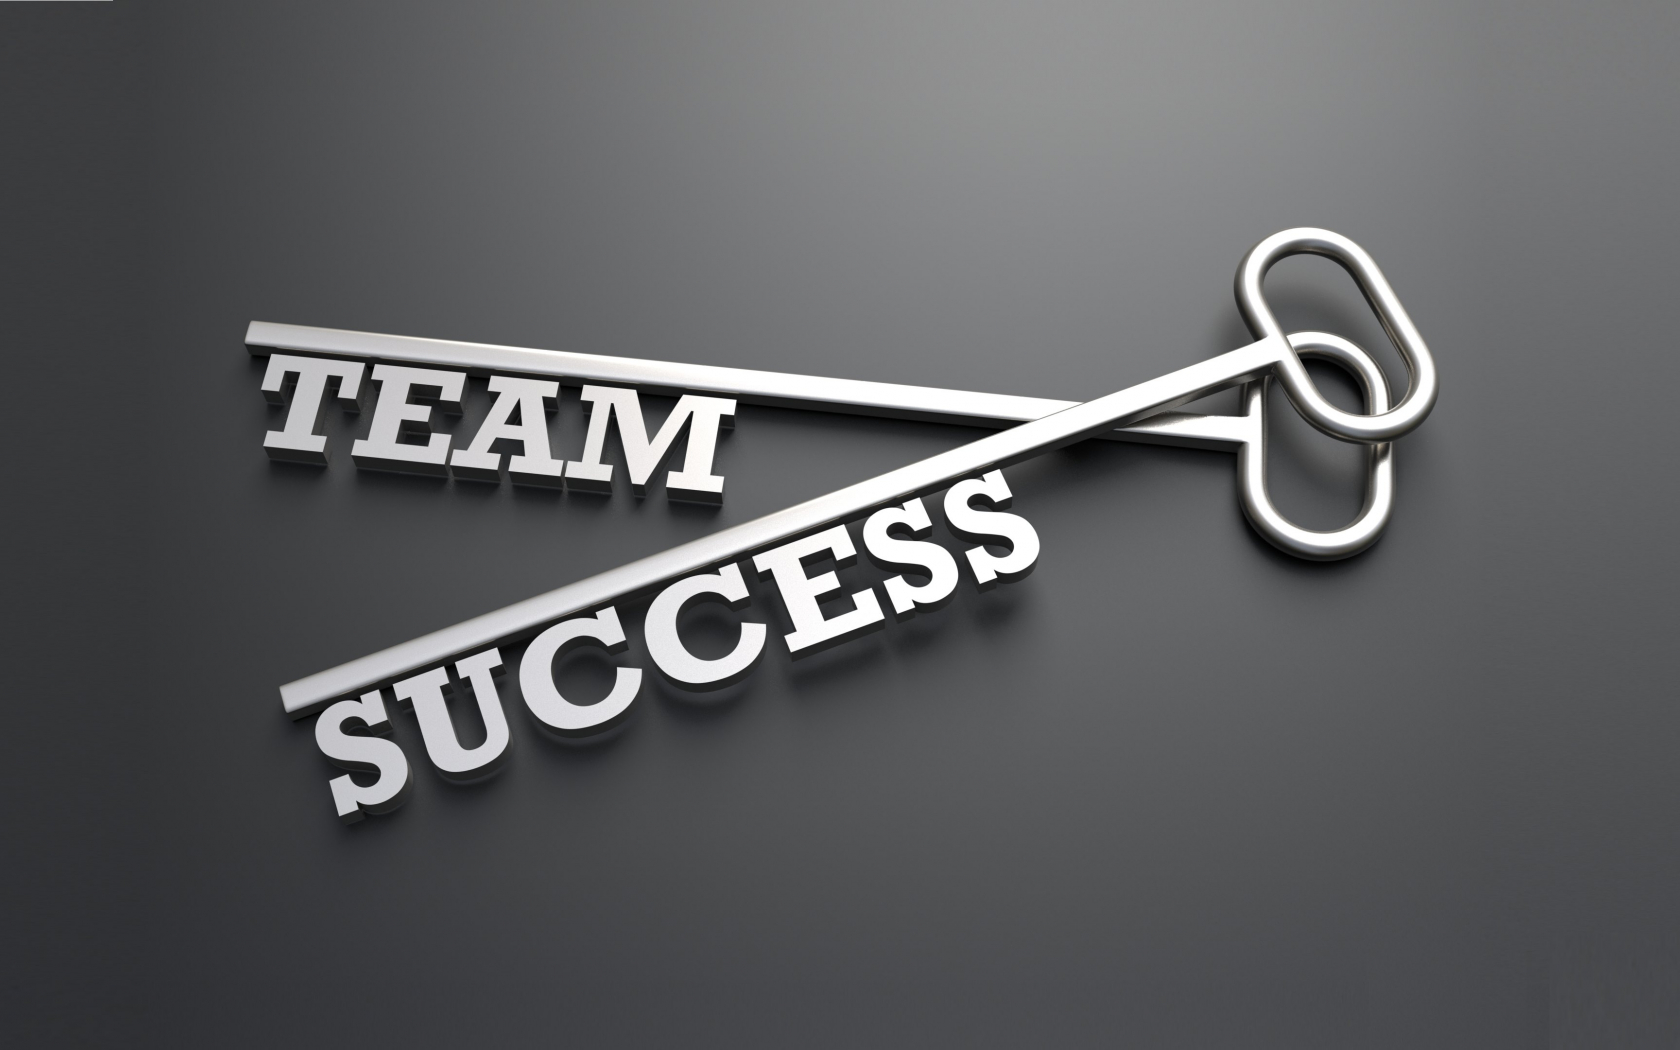 Free Download Teamwork Motivation Team Success Hd Wallpapers 4k Wallpapers 3840x2160 For Your Desktop Mobile Tablet Explore 43 Success Hd Wallpaper Positive Message Wallpaper Success Wallpapers With Quotes Motivational